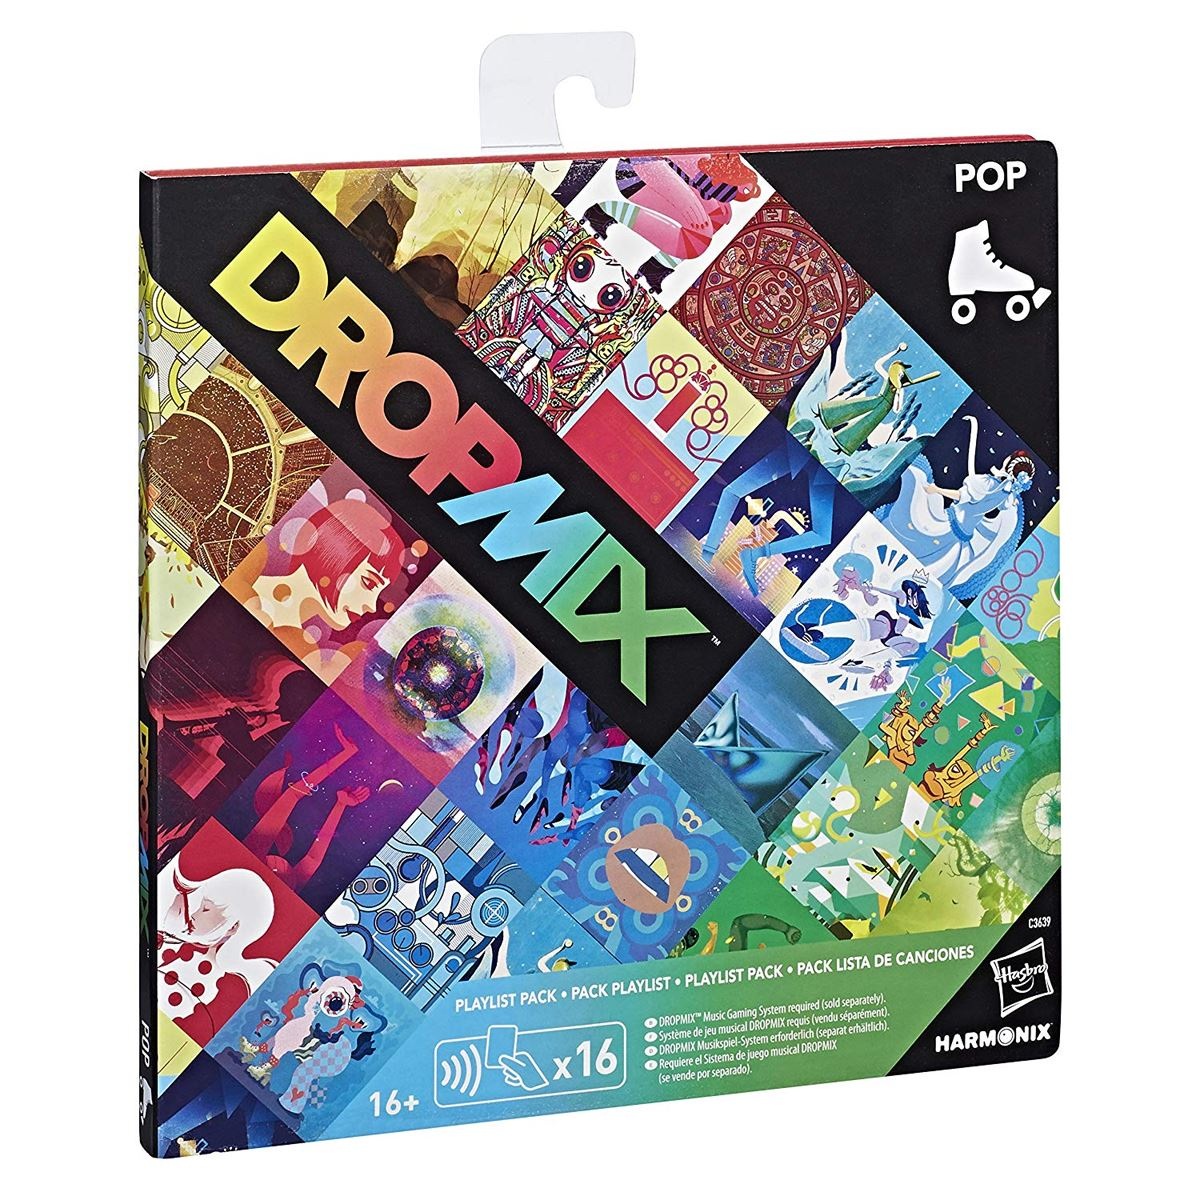 New-Dropmix-Rock-Pop-Hip-Hop-Or-Electronic-Playlist-Card-Pack-Hasbro-Official miniatuur 12